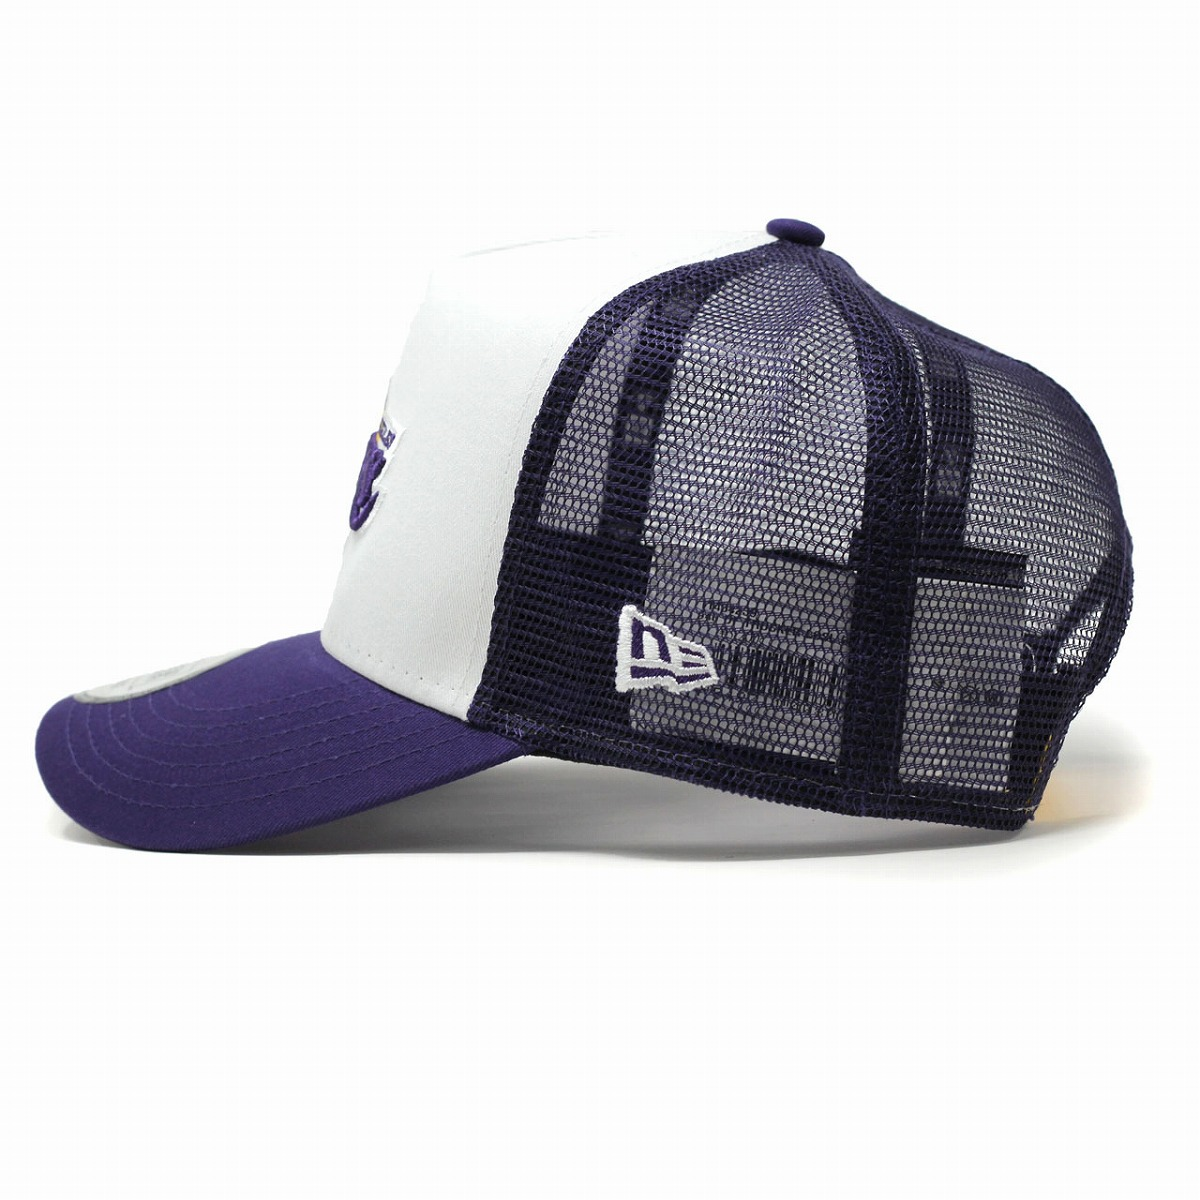 first rate online store check out ELEHELM HAT STORE: Los Angeles Lakers cap men NBA NEWERA cap ...